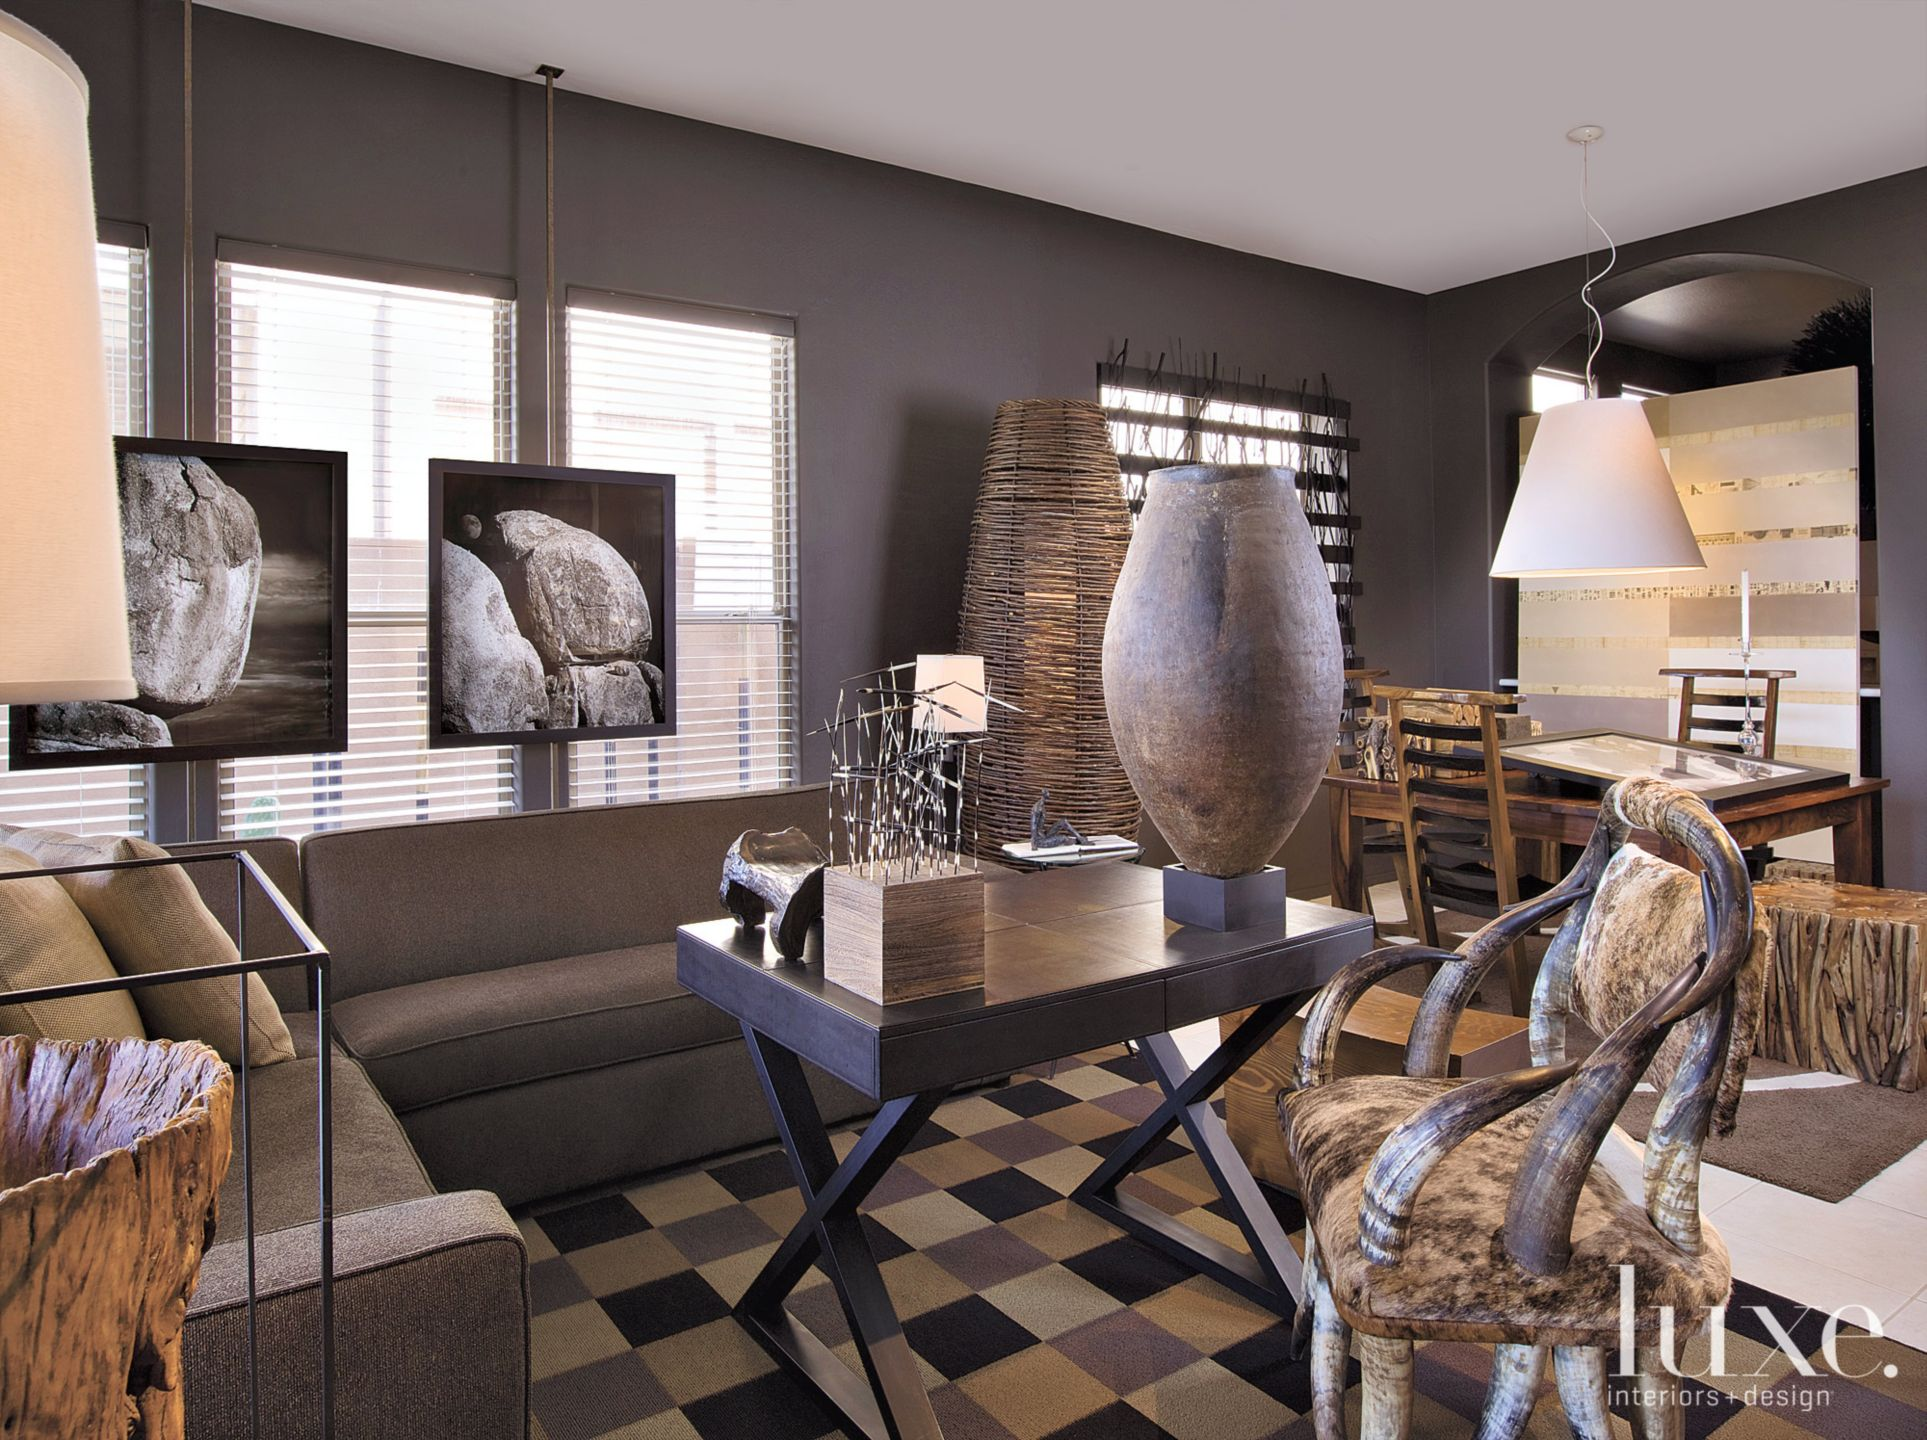 Eclectic Brown Living Area with Cowhide Chair